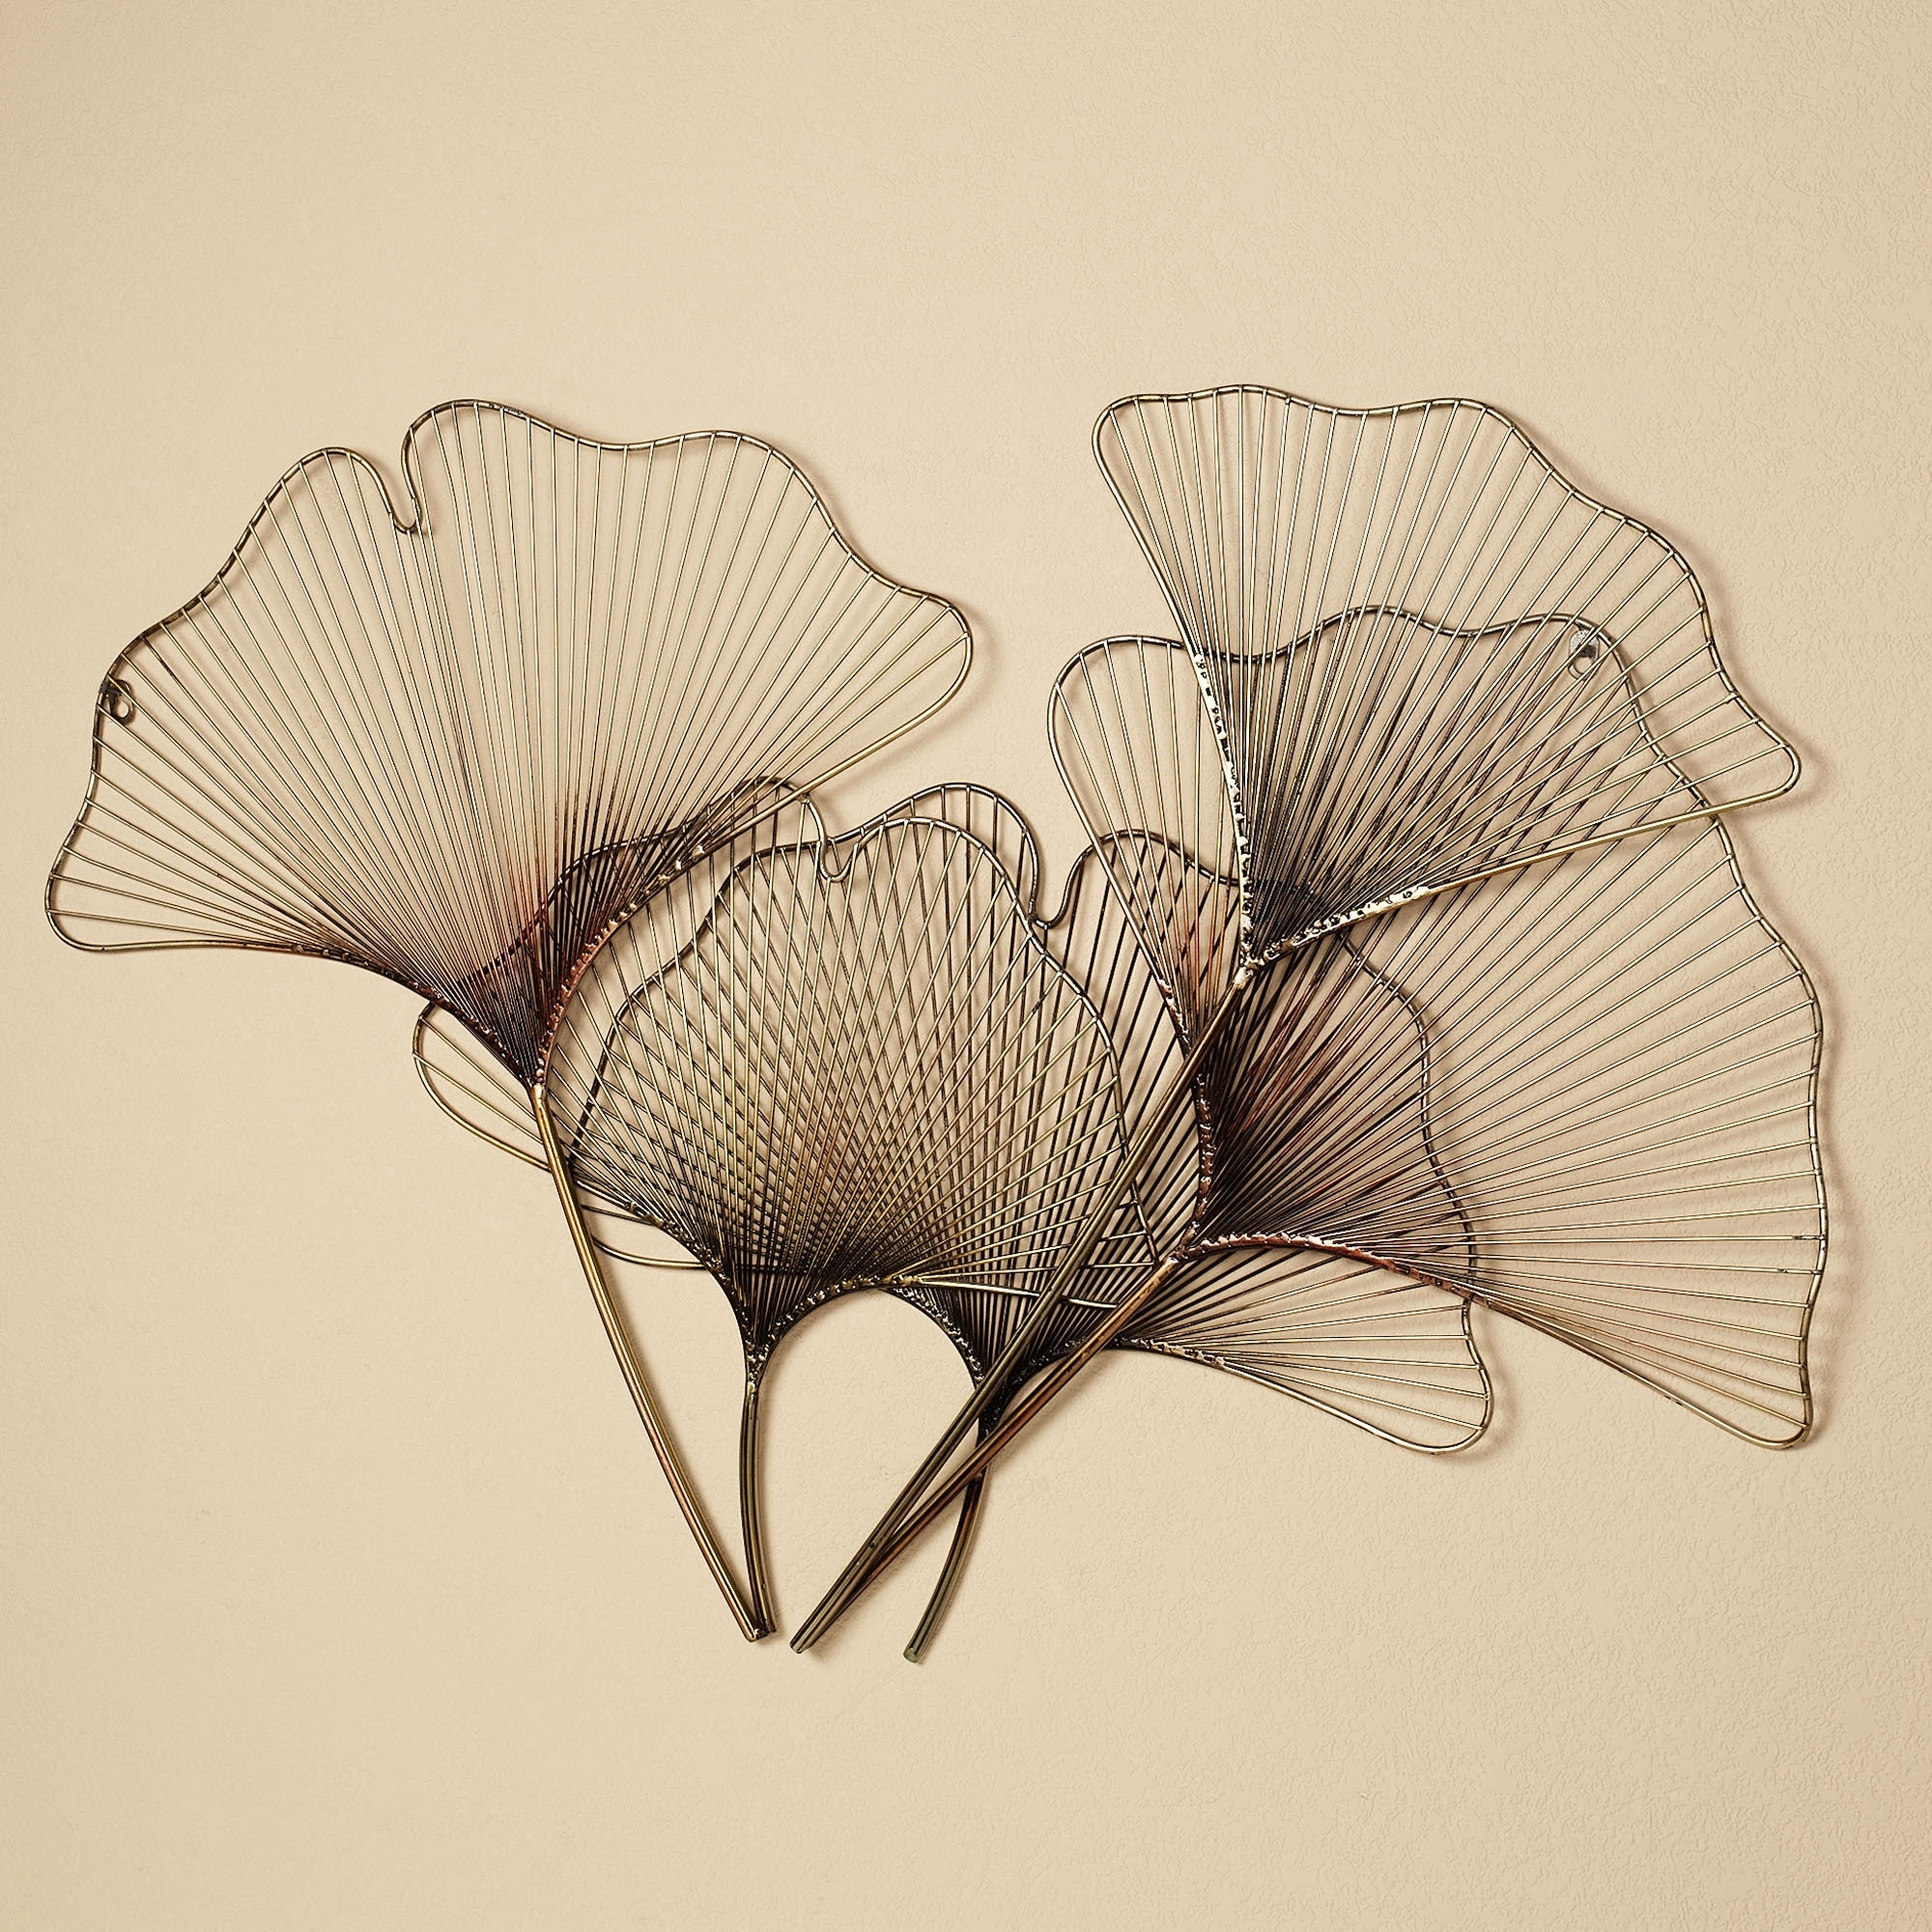 Most Recently Released Metallic Wall Art Regarding Ginkgo Breeze Metal Wall Sculpture (View 12 of 15)